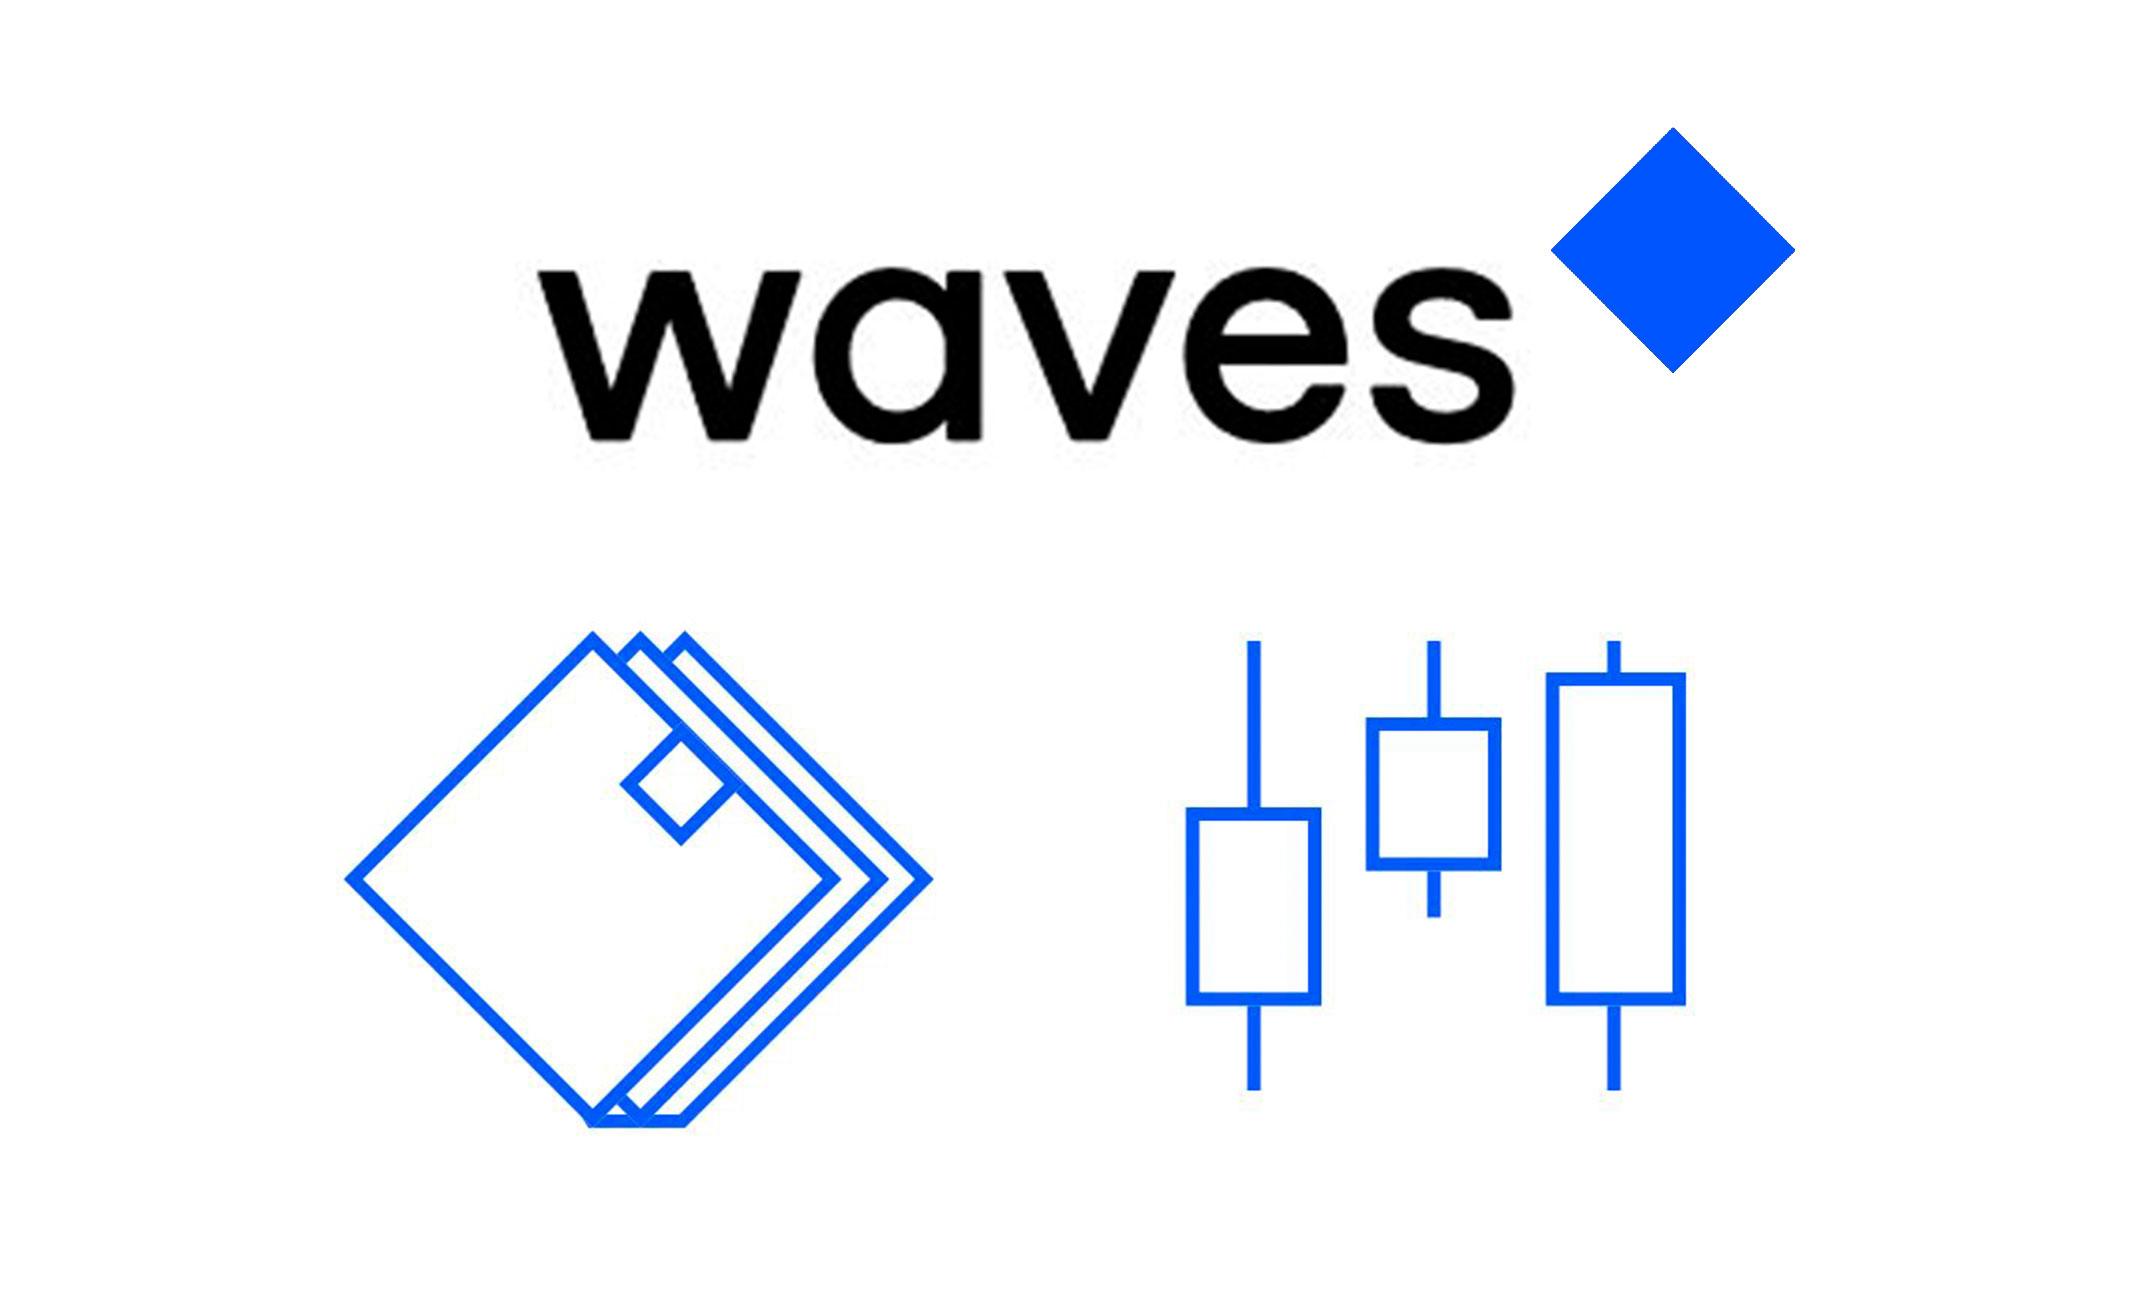 You've probably heard of Bitcoin, but it's nothing compared to WAVES